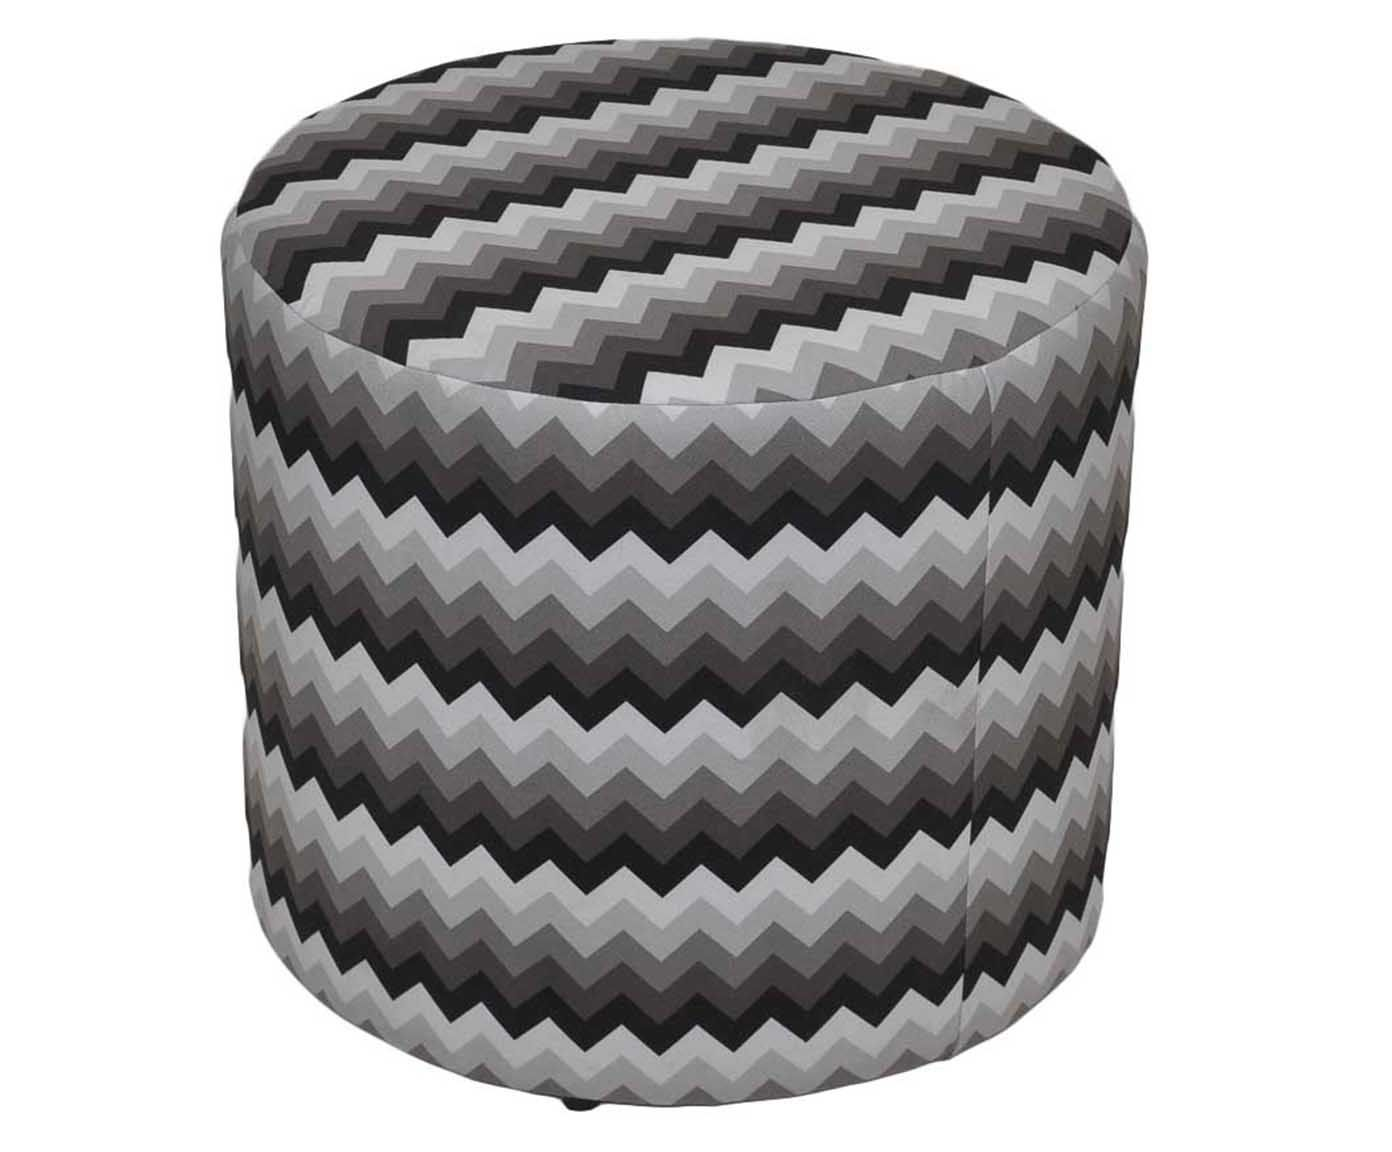 Pufe zig zag - nuit mist   Westwing.com.br